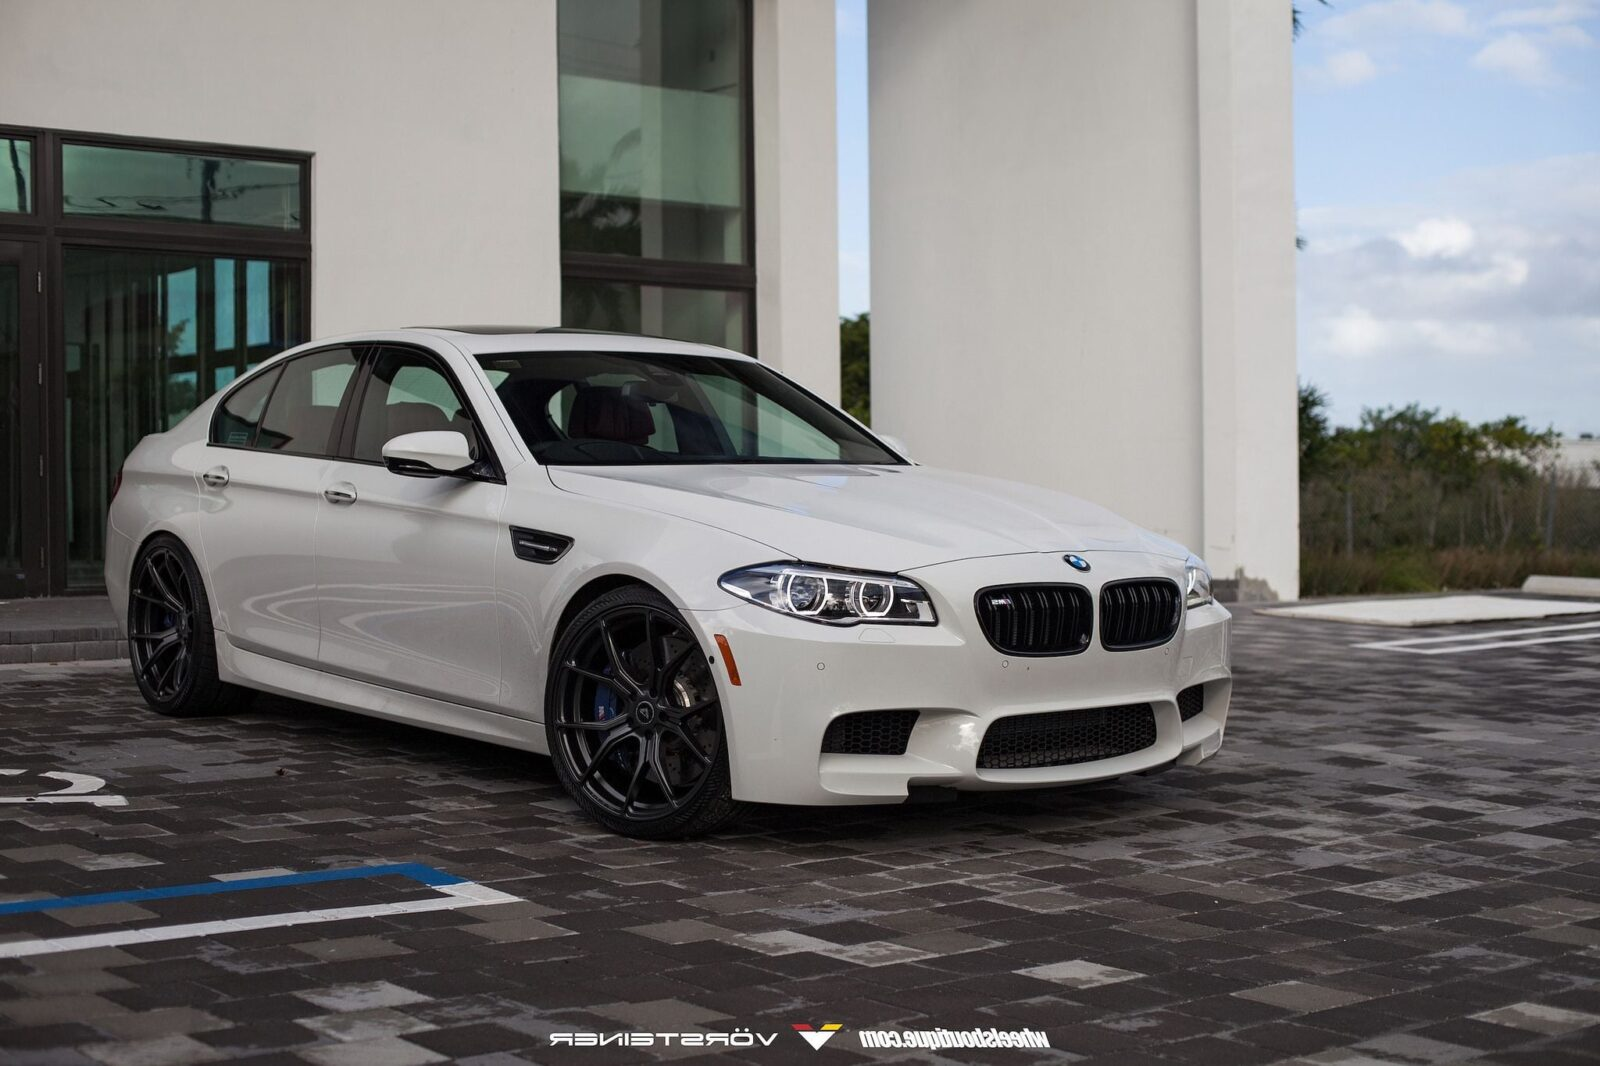 36 bmw m5 f10 wallpapers hd high quality download. Black Bedroom Furniture Sets. Home Design Ideas